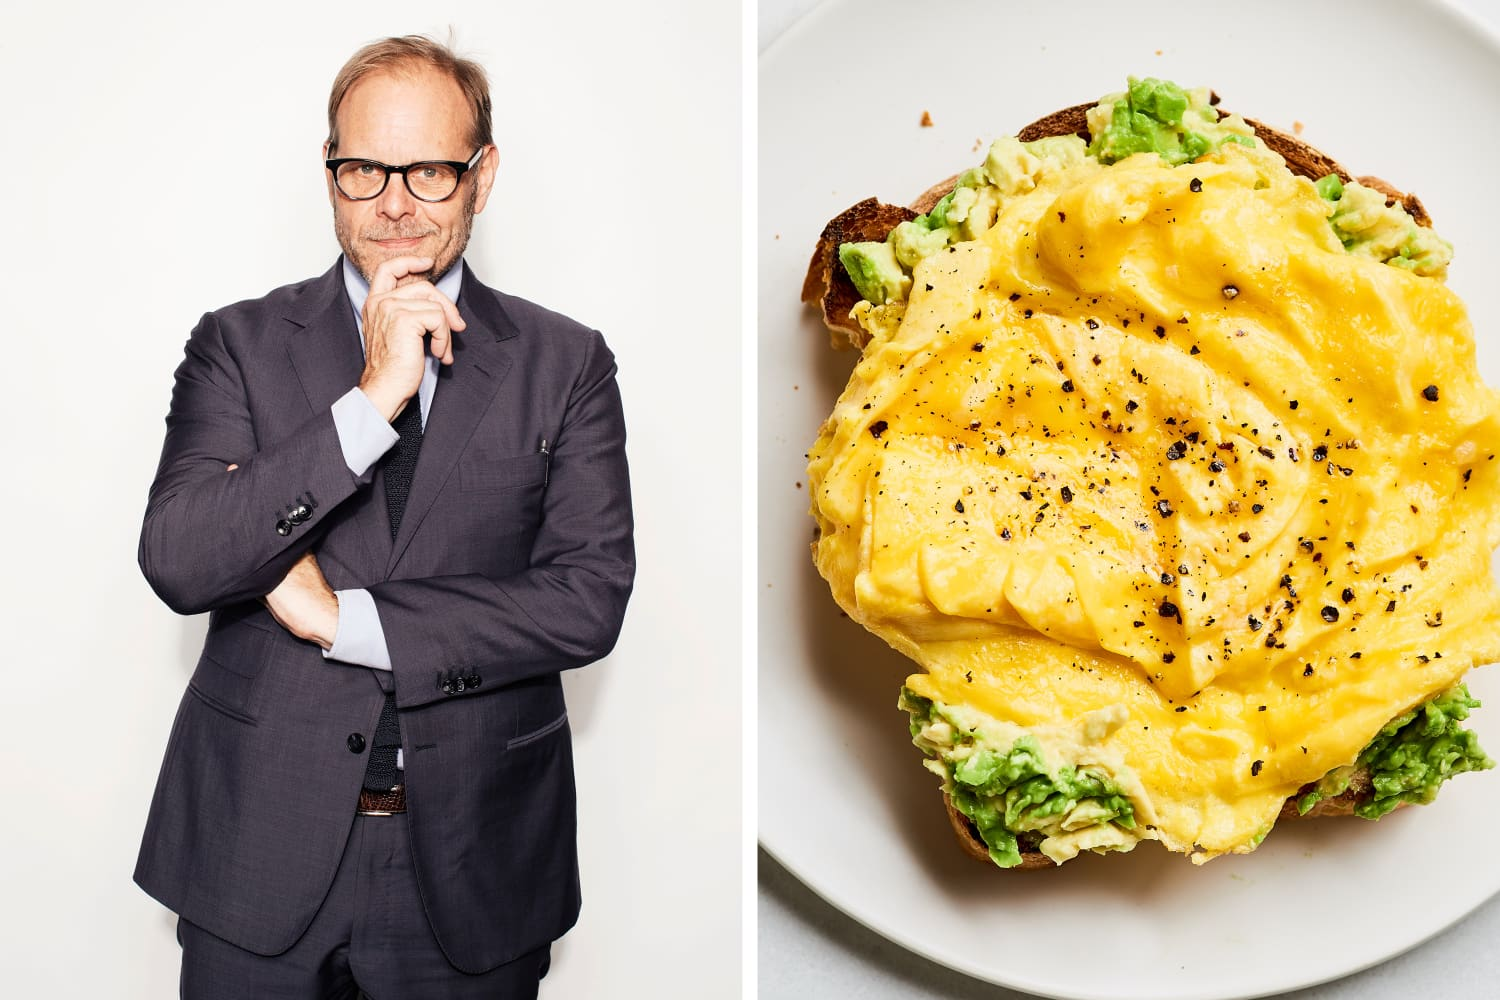 The Top 10 Things We Learned from Alton Brown in 2019